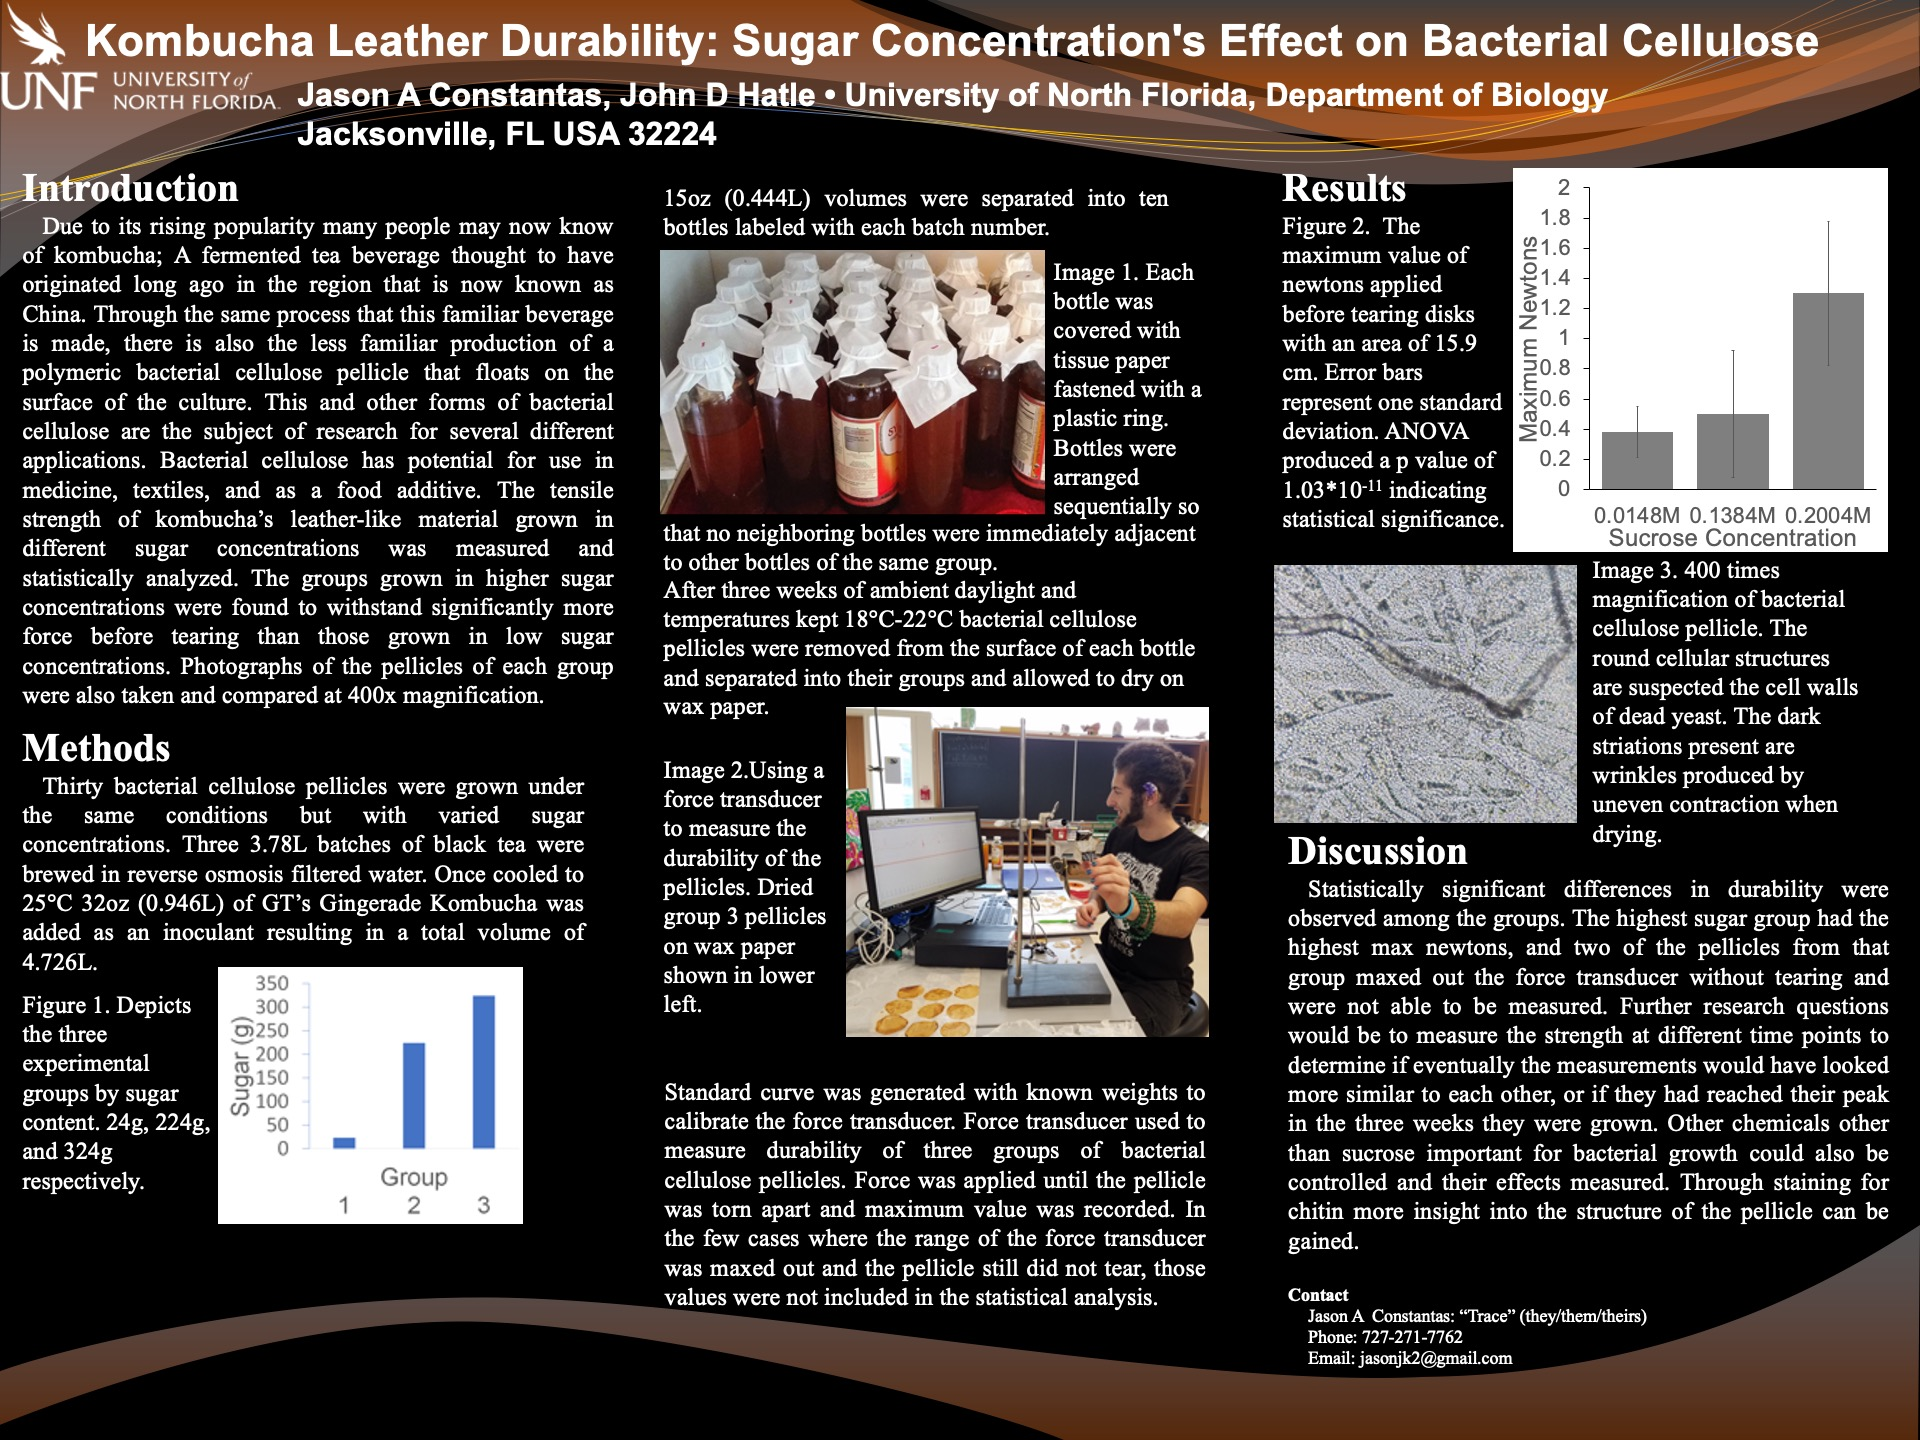 Kombucha Leather Durability: Sugar Concentration's Effect on Bacterial Cellulose poster